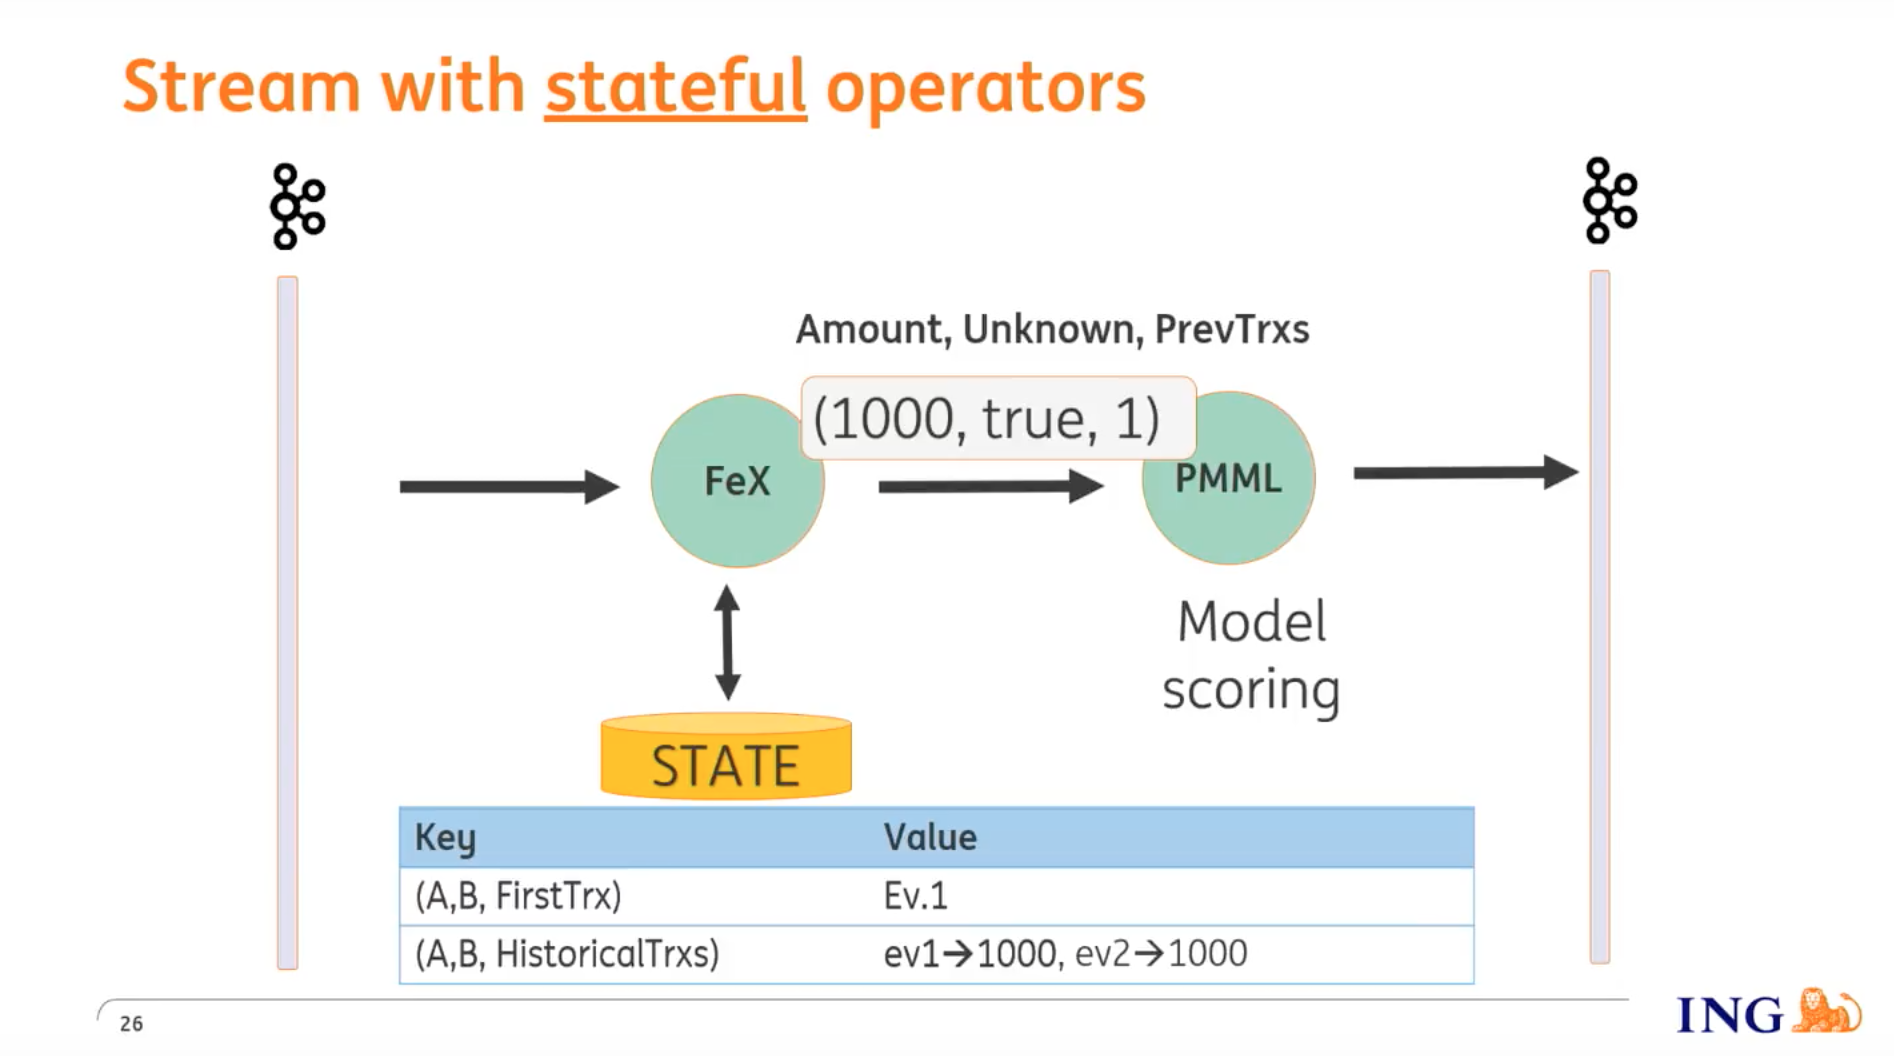 How ING uses Apache Flink's stateful operators for fraud detection